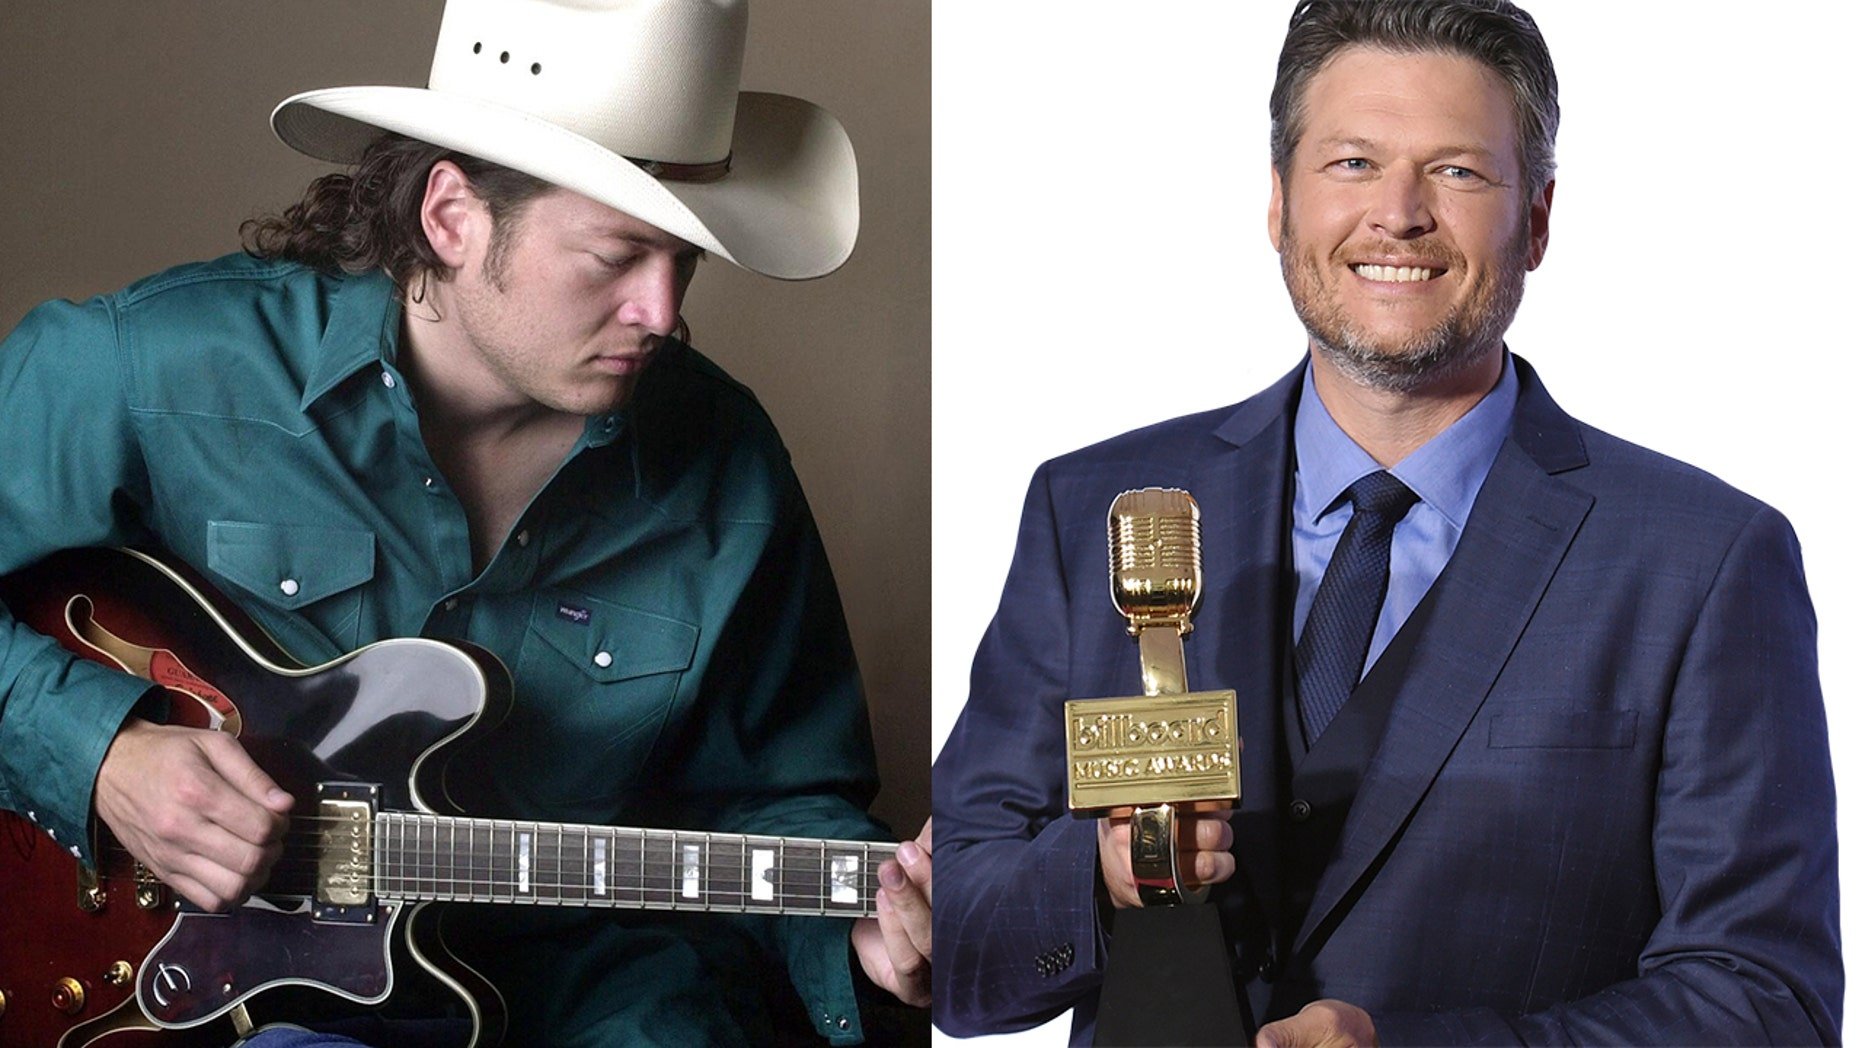 How did Blake Shelton go from small-town Oklahoma to country superstar?